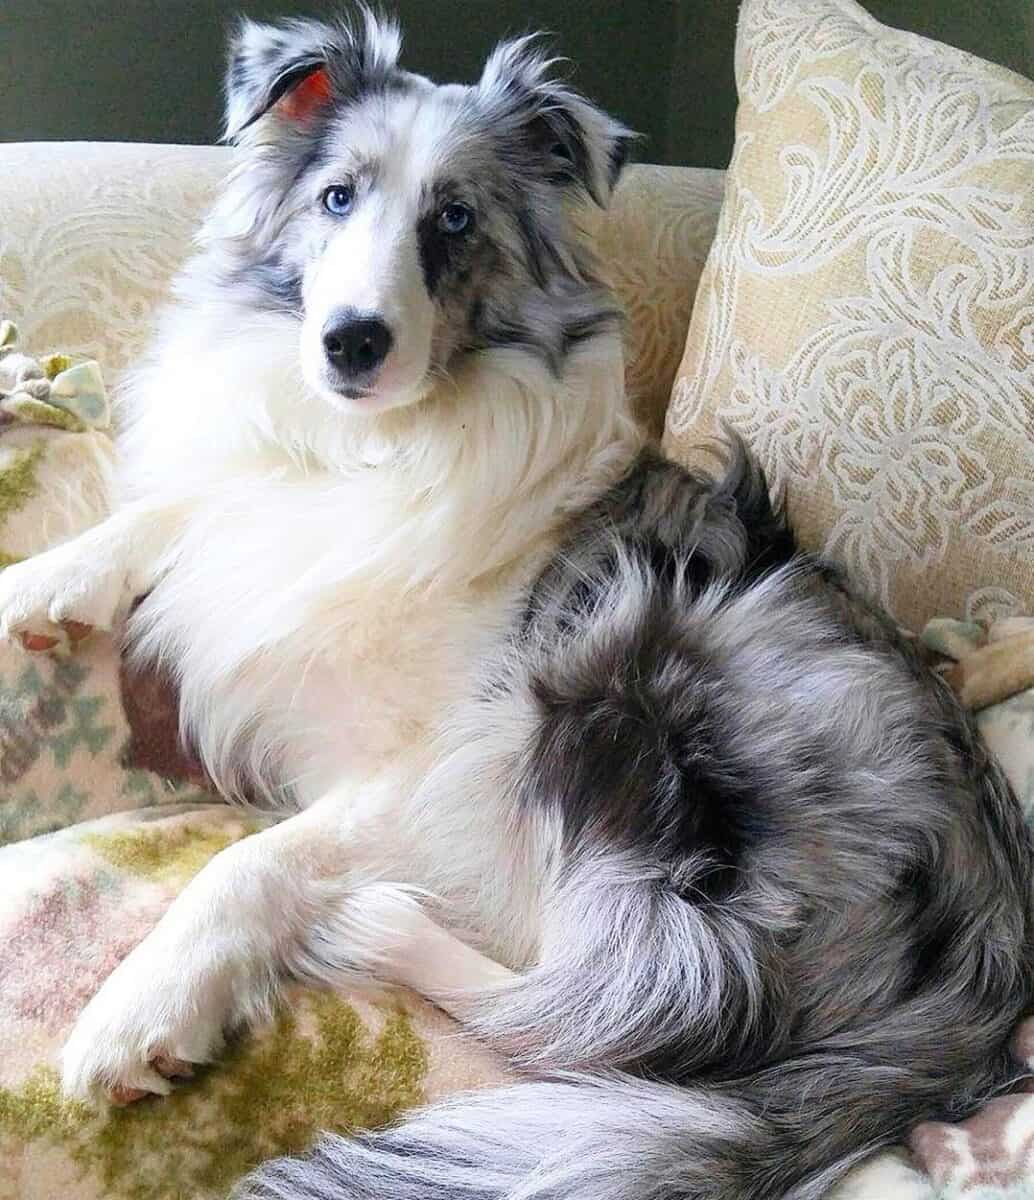 Merle Miniature Border Collie lying on a couch